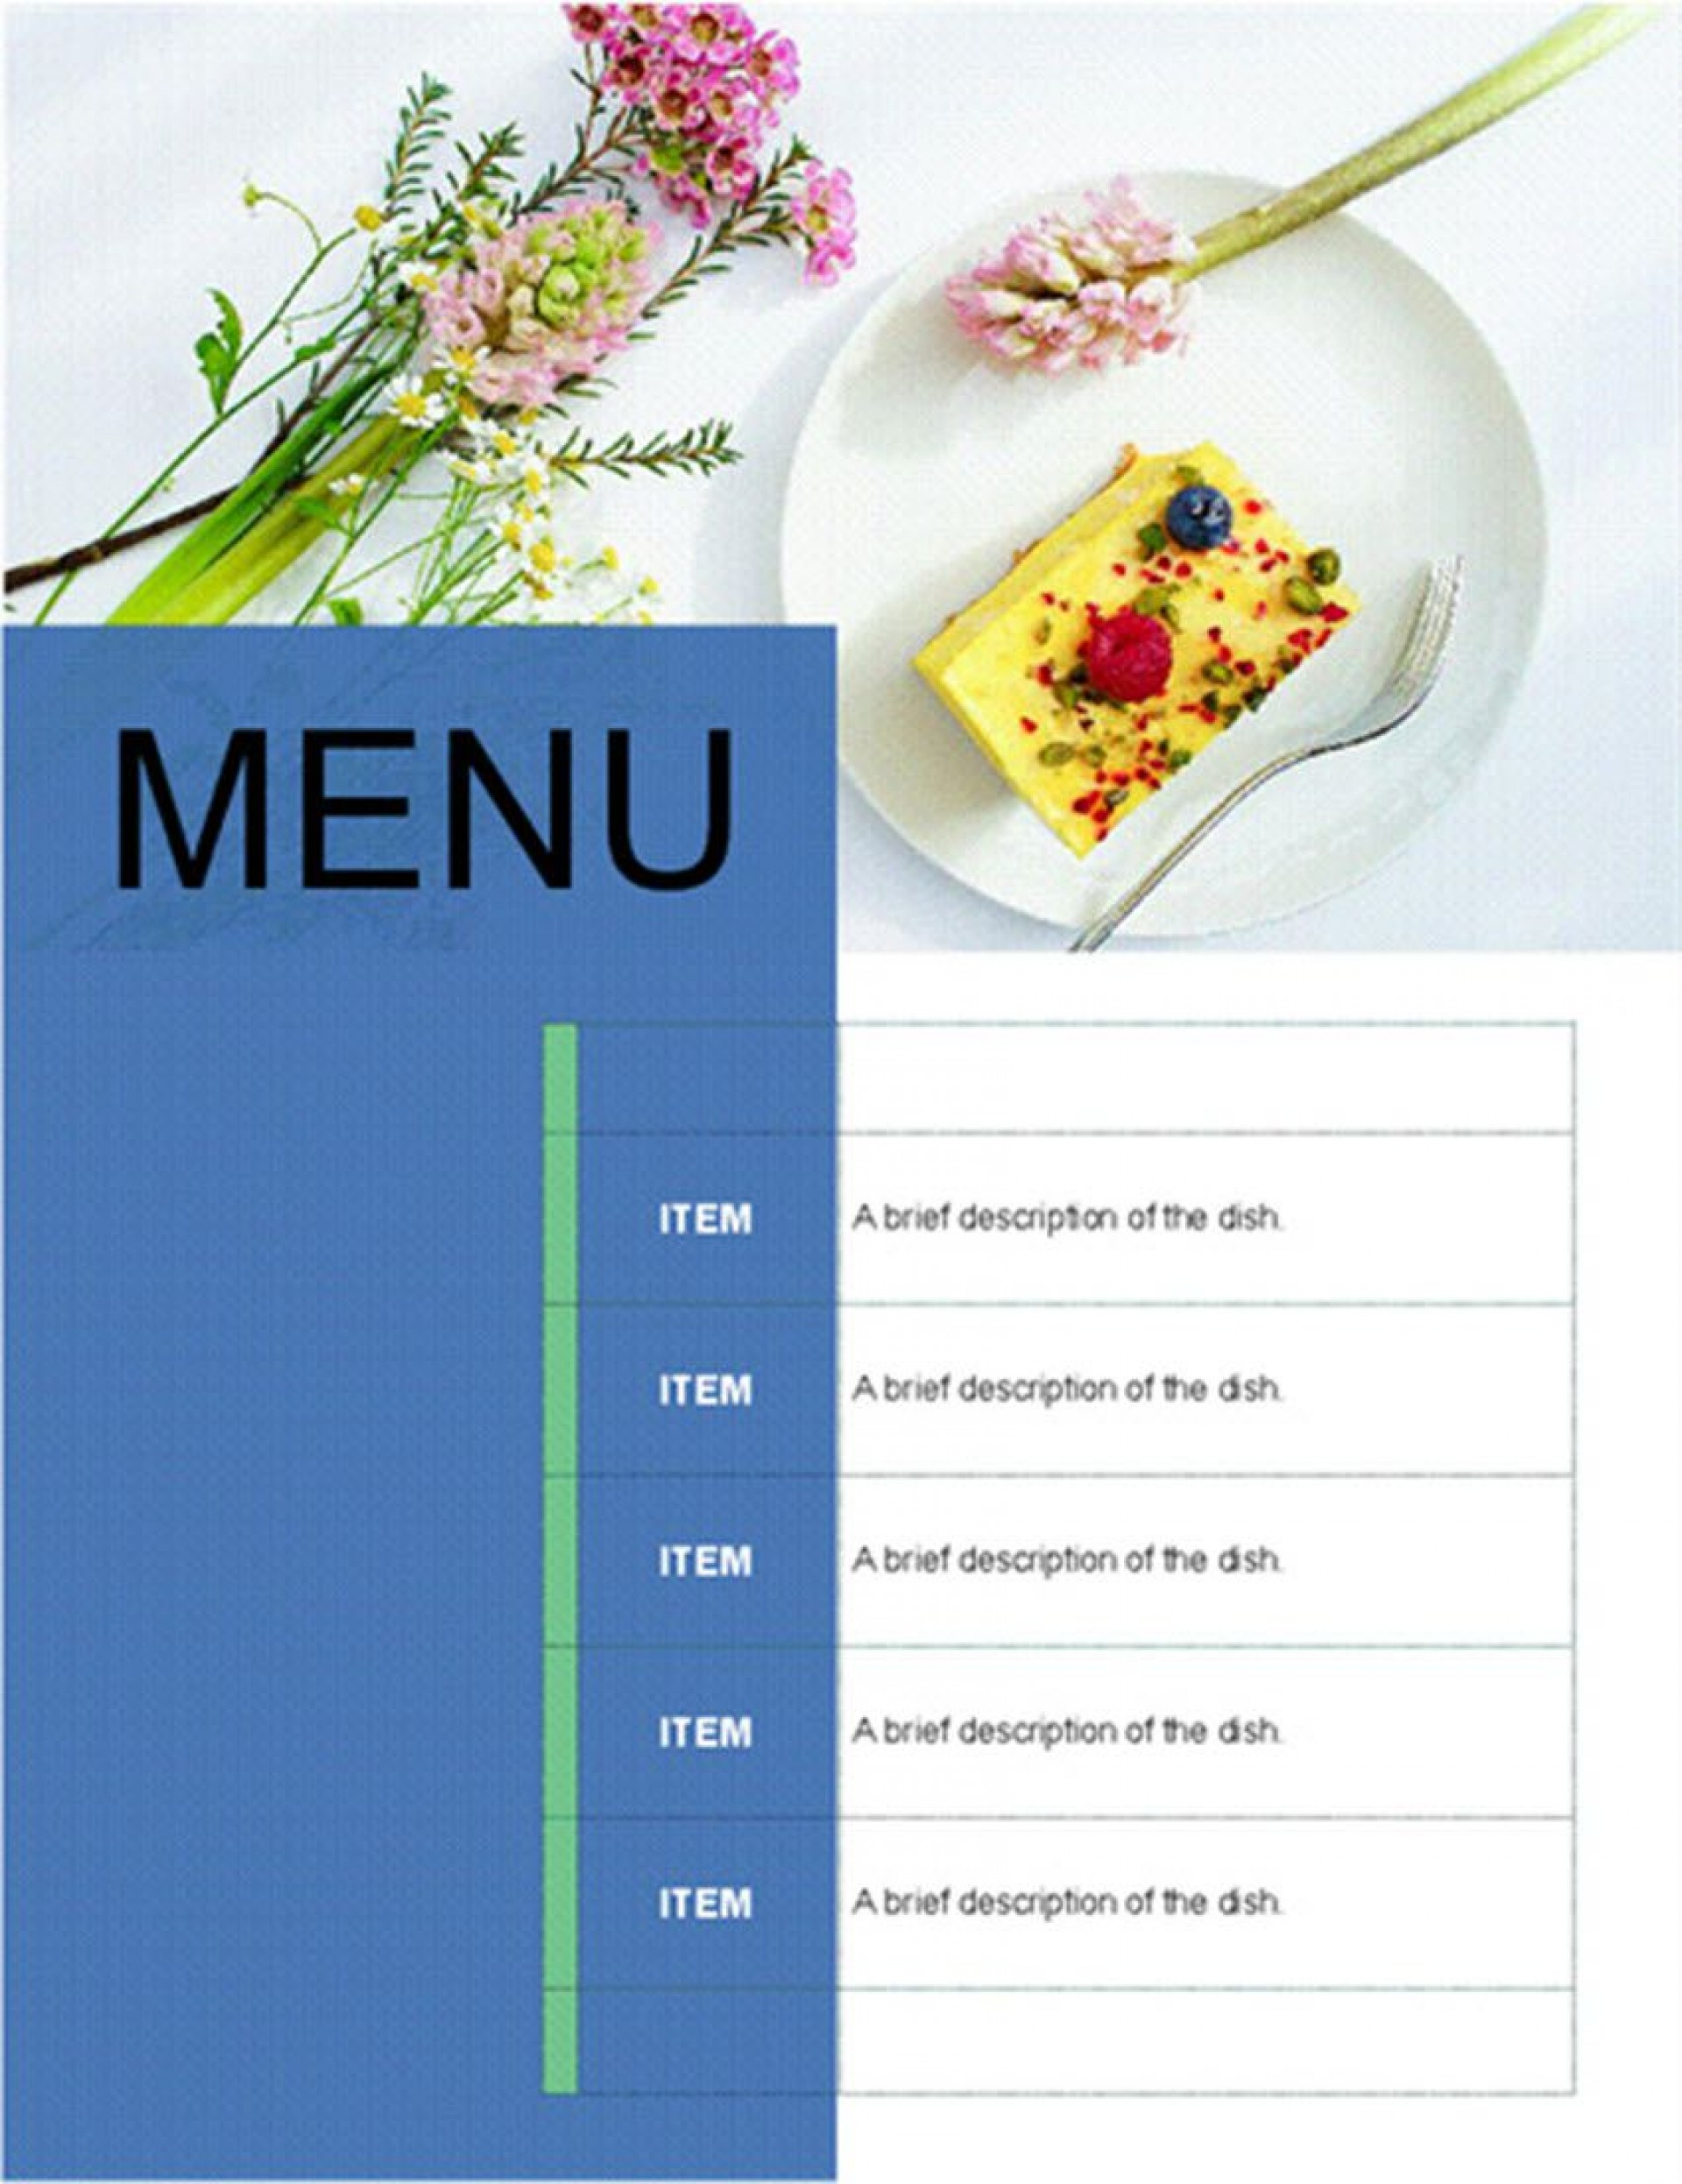 005 Dreaded Menu Template Free Download Word Concept  Dinner Party Wedding1920